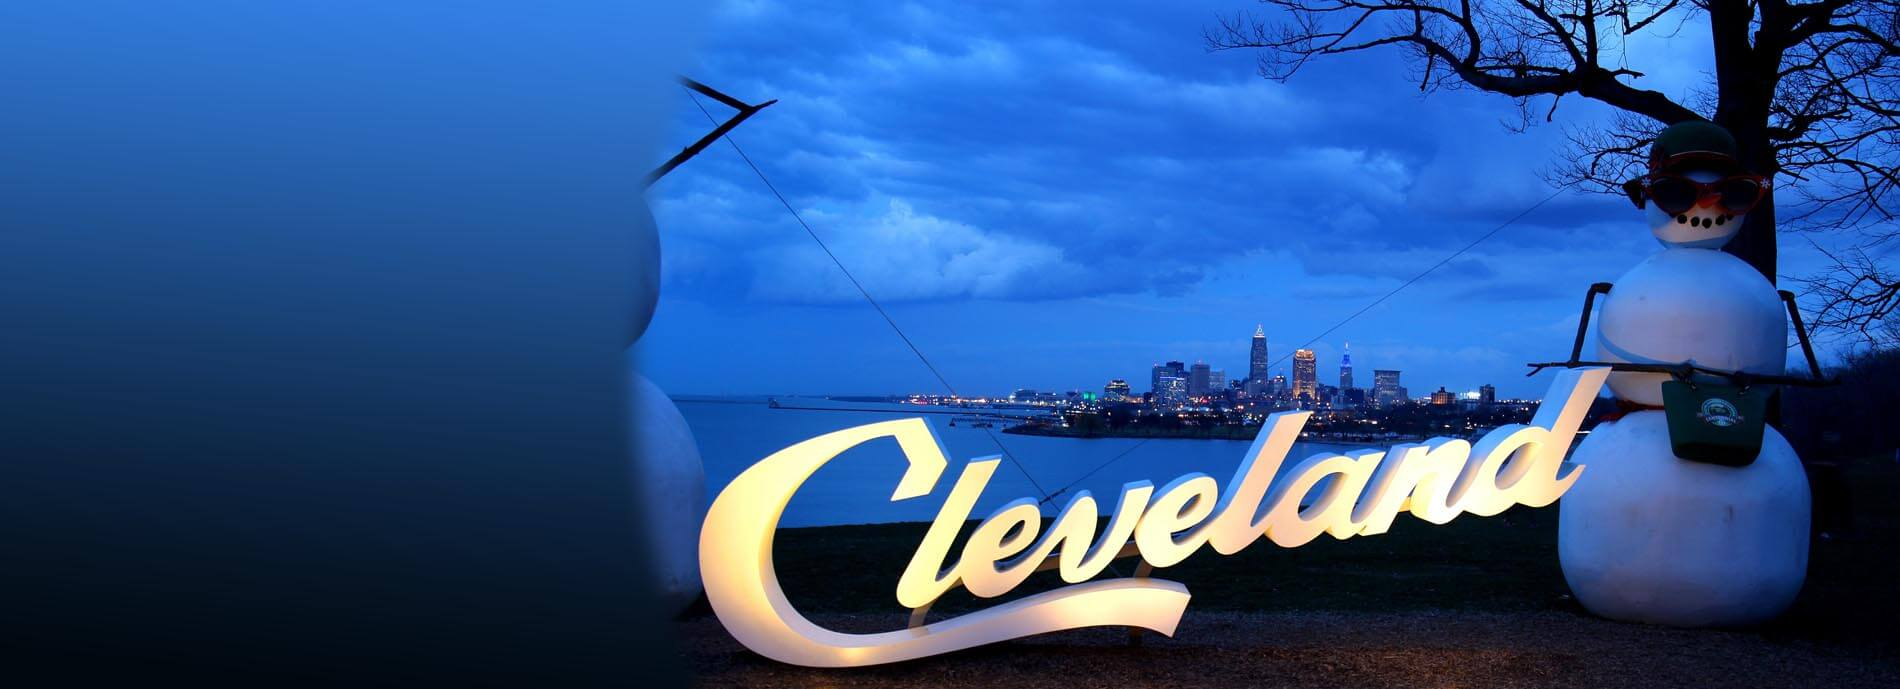 Cleveland slide - sign over lake, city in background